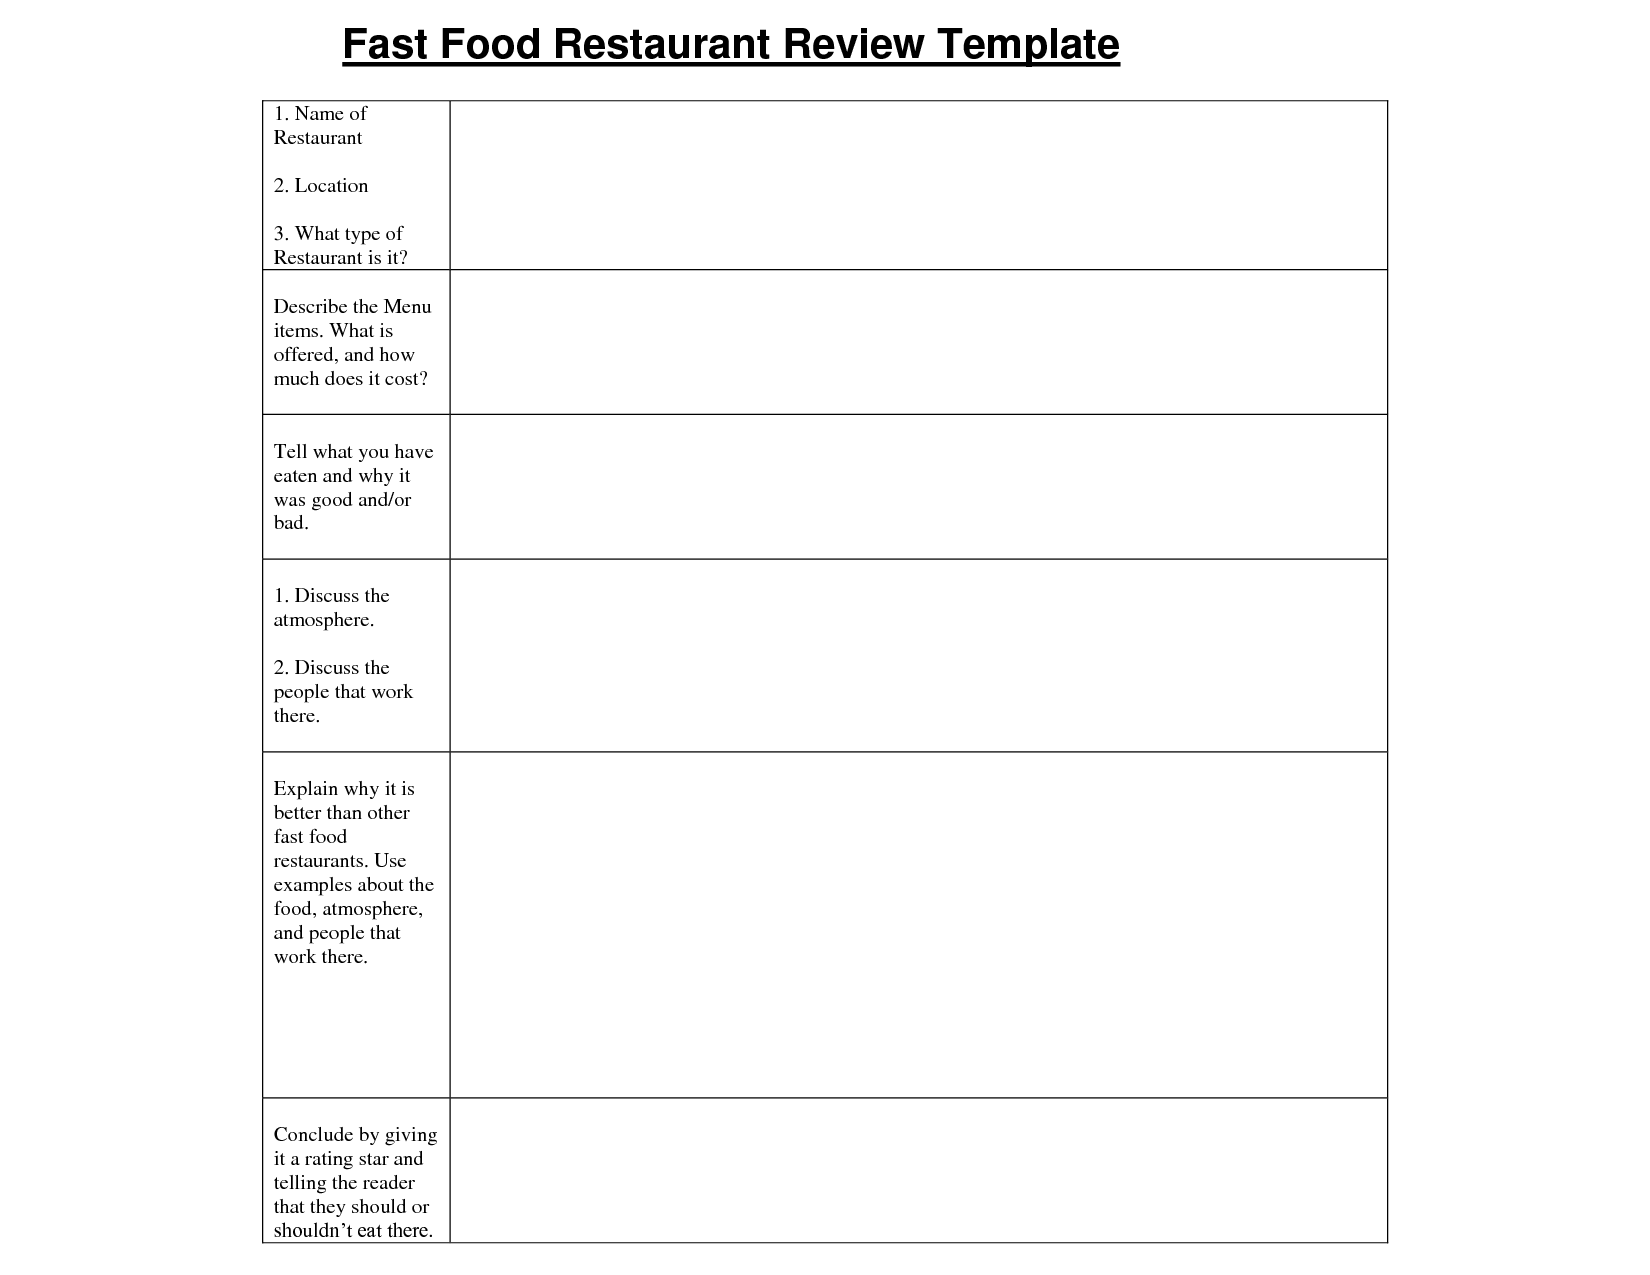 Food review template tiredriveeasy food review template spiritdancerdesigns Gallery